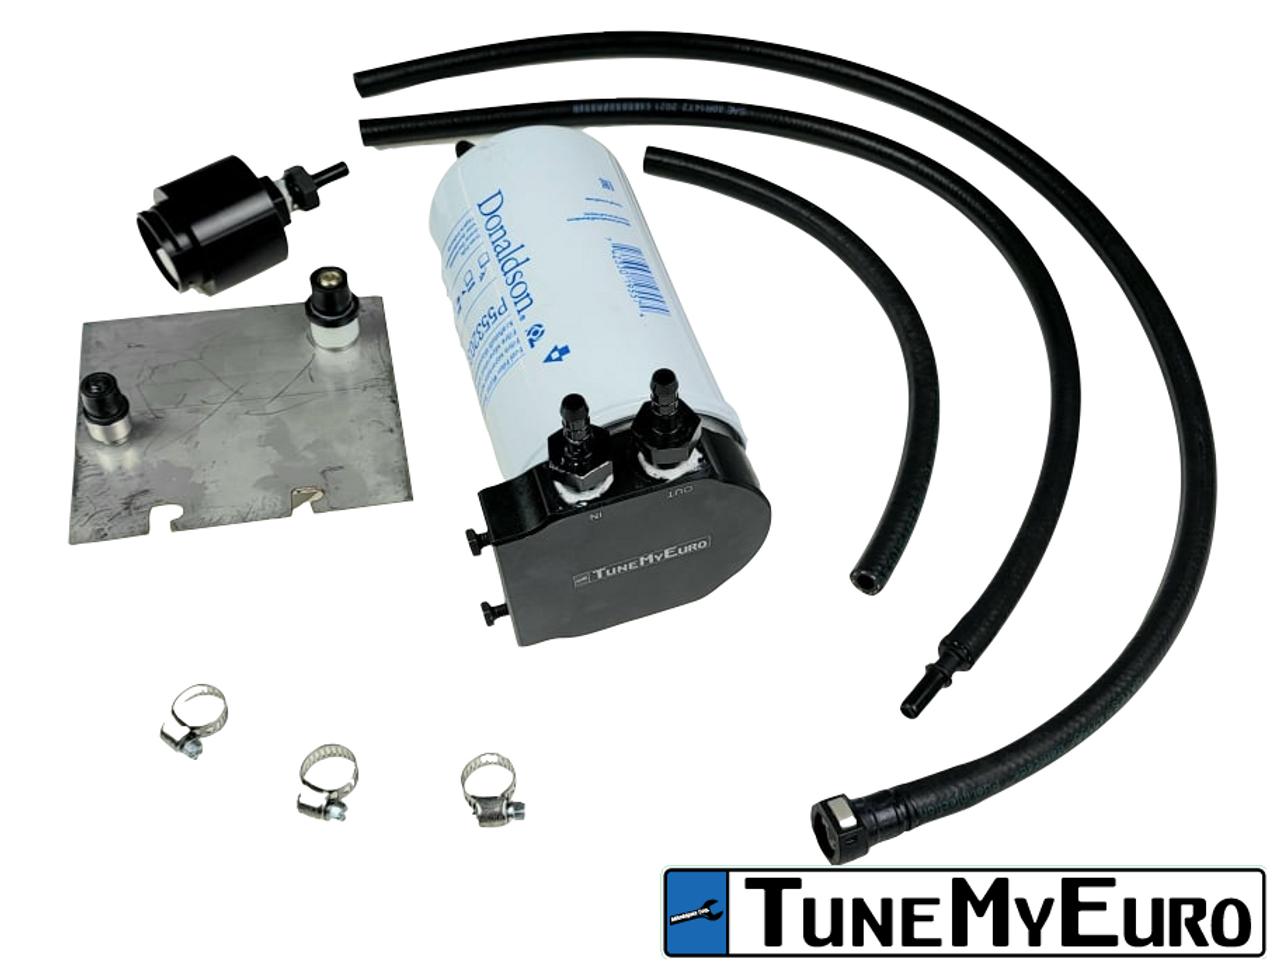 3 micron fuel filter kit for E70 and F15